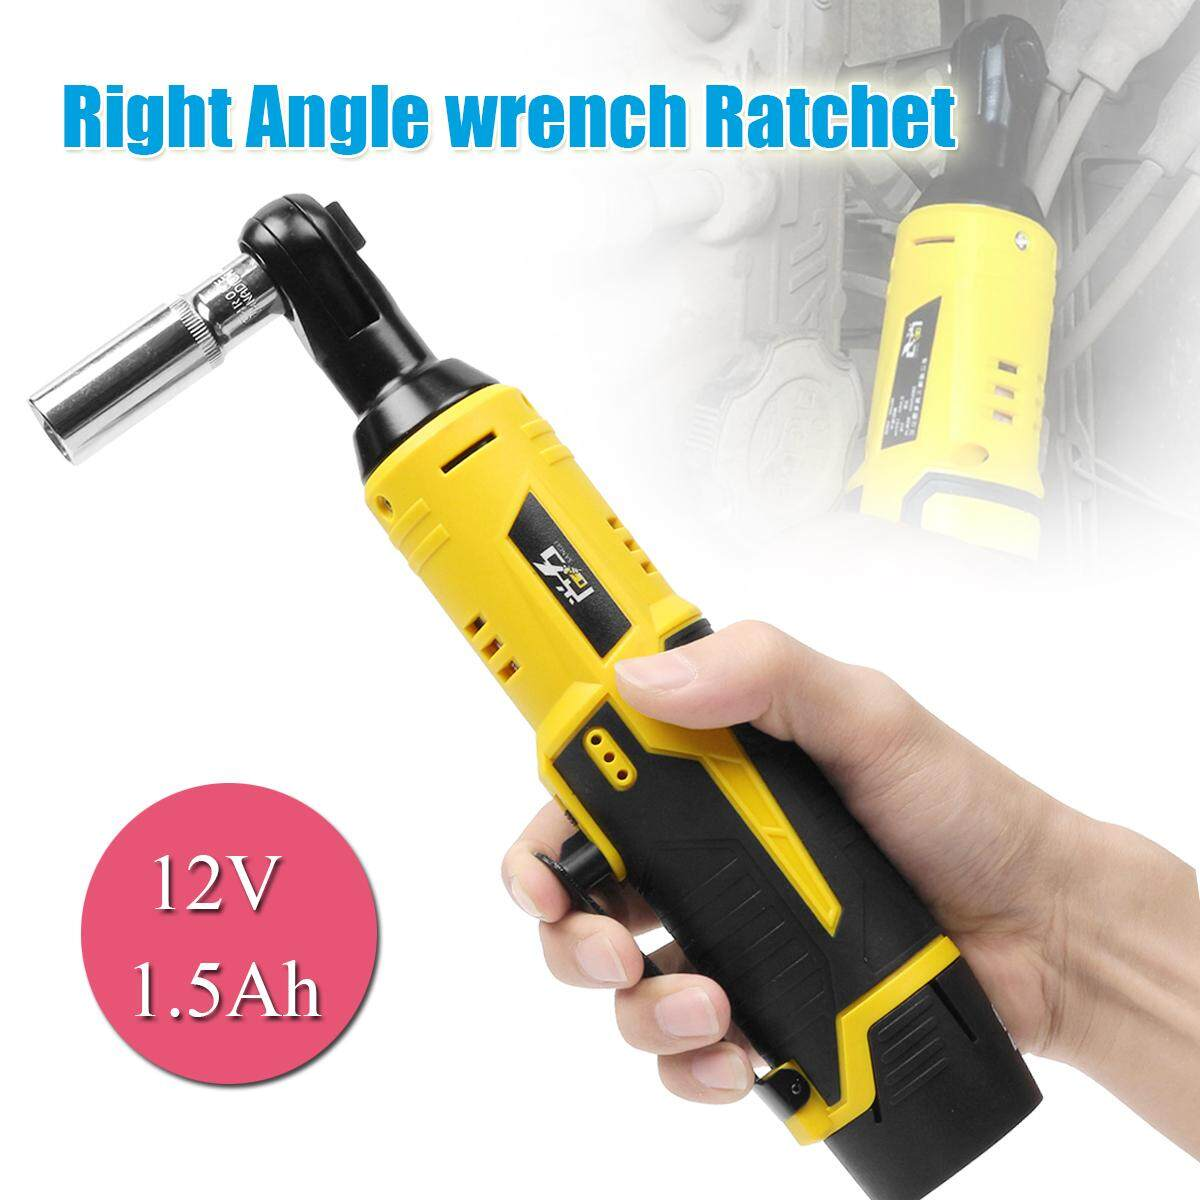 12v 1 5ah Cordless Right Angle Wrench Ratchet 3 8 Li Ion